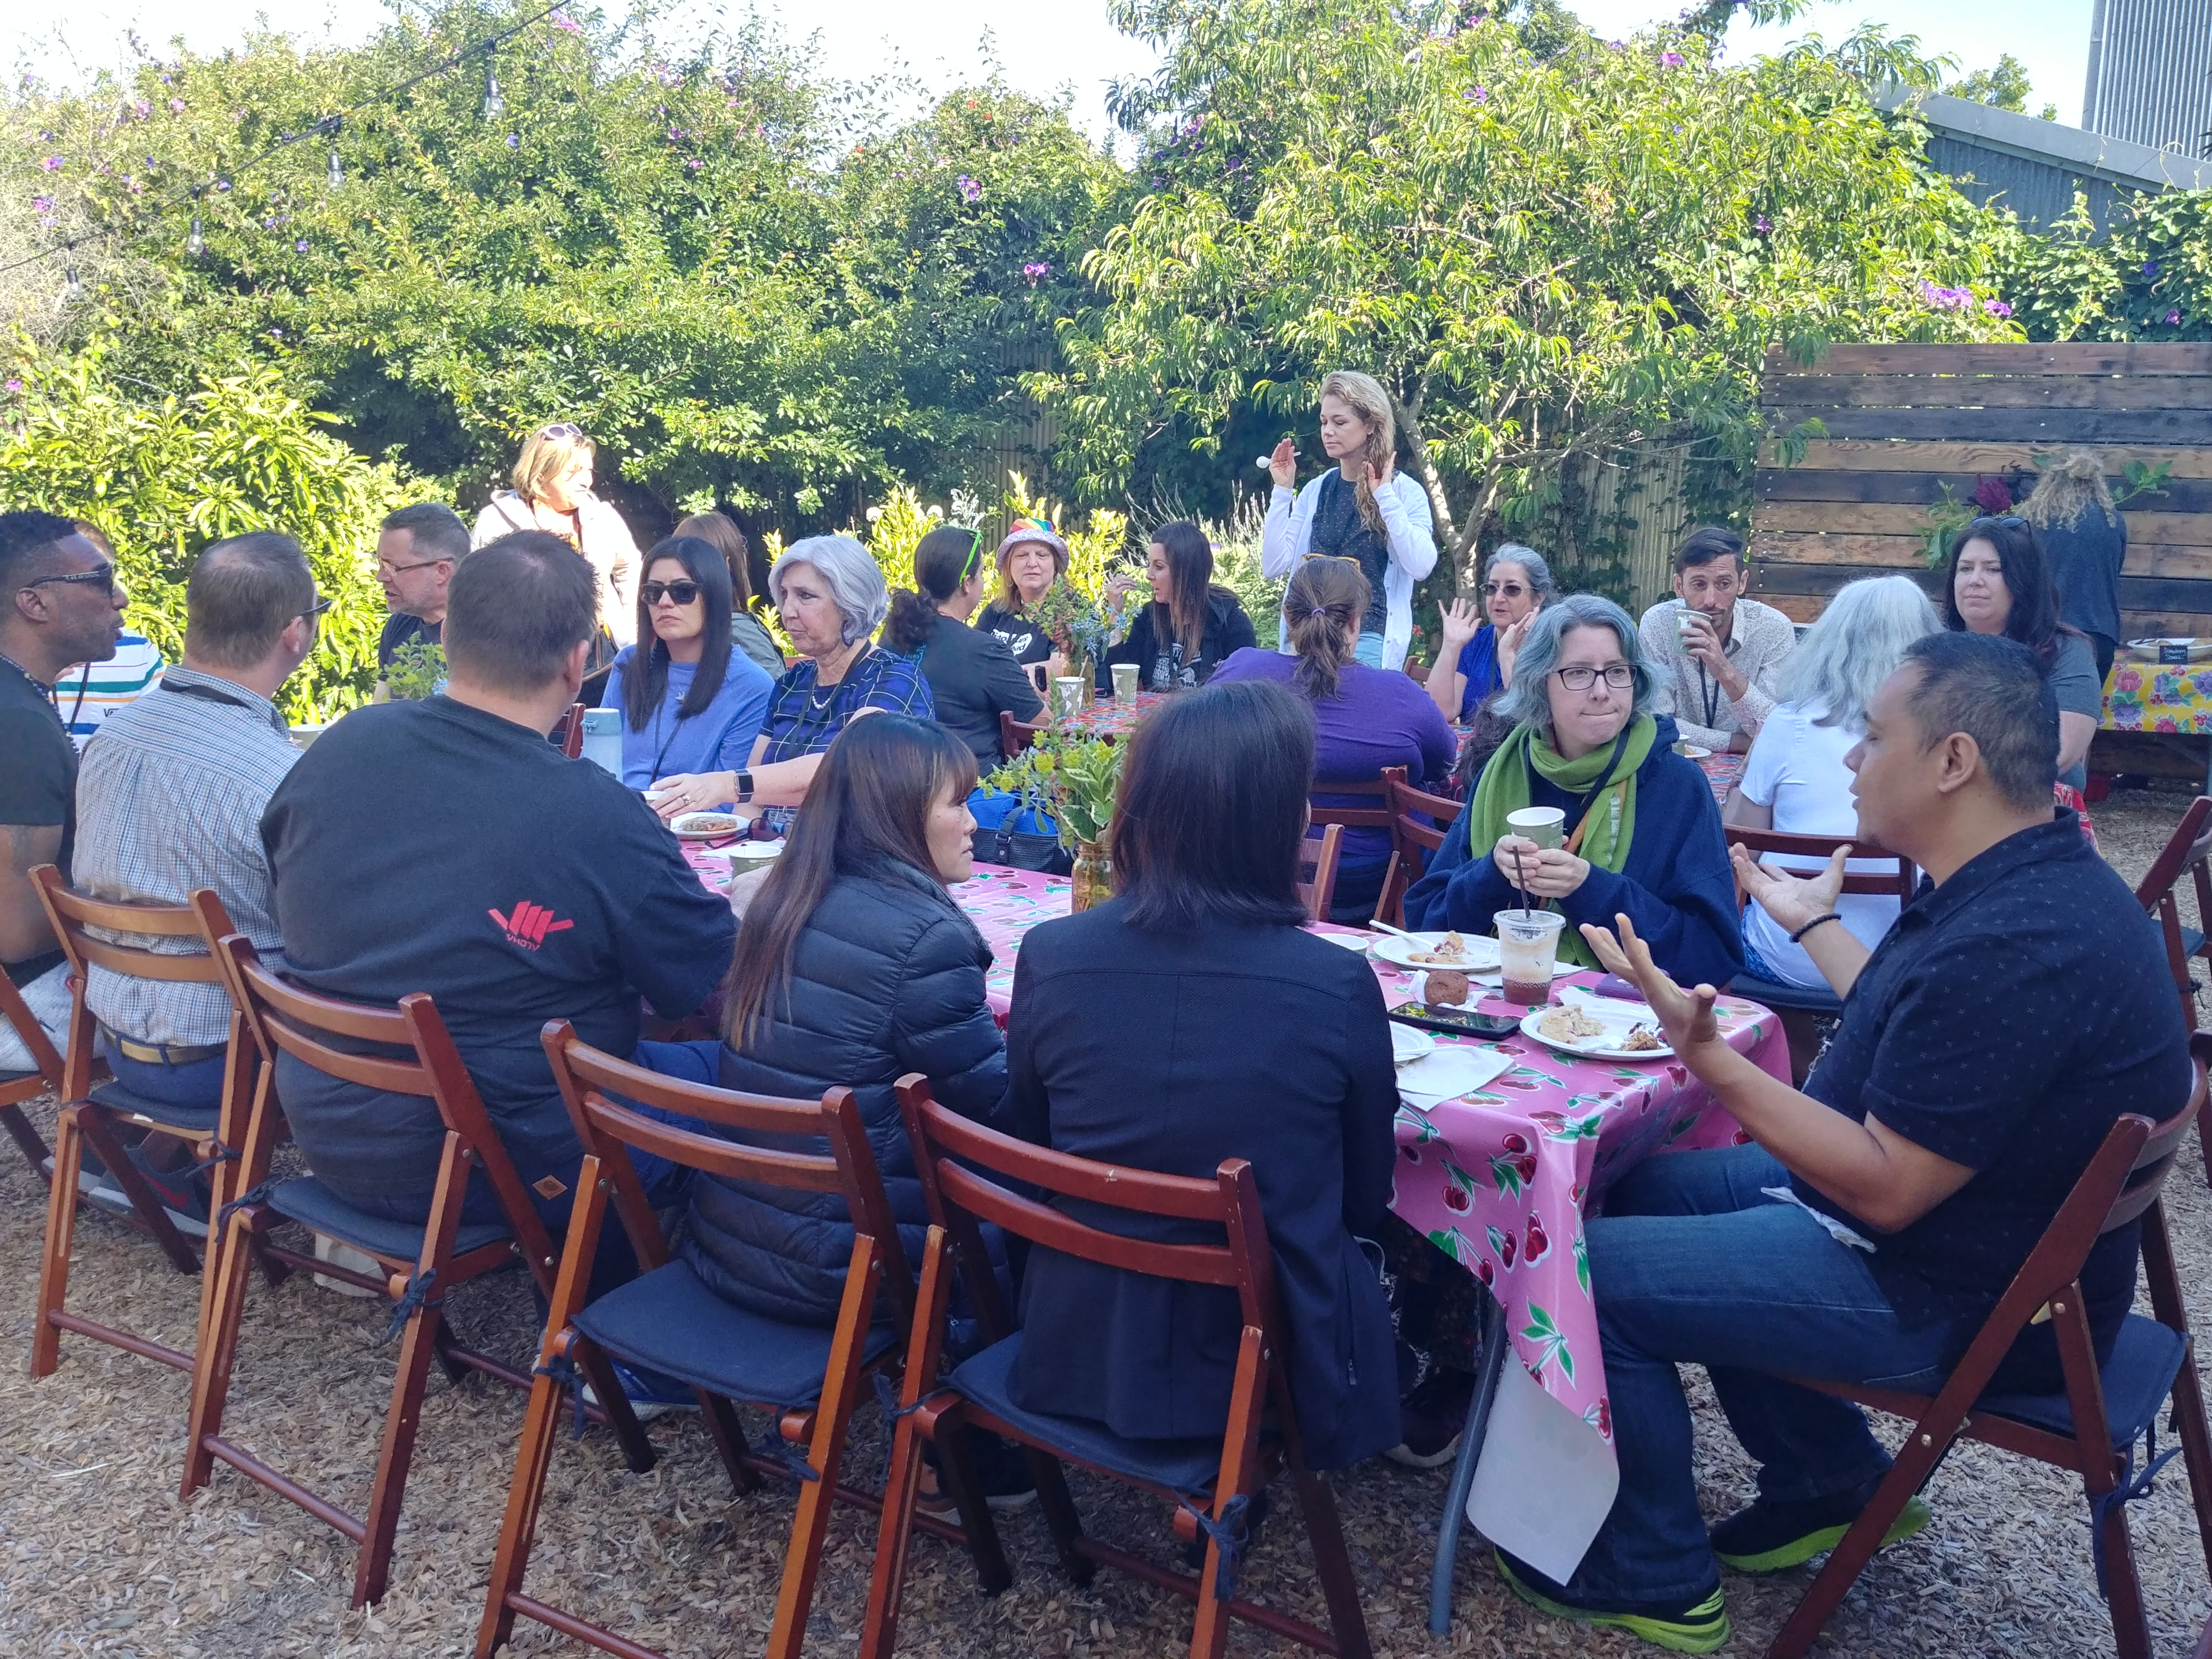 A large group of people sit and eat at long tables outside in a garden.